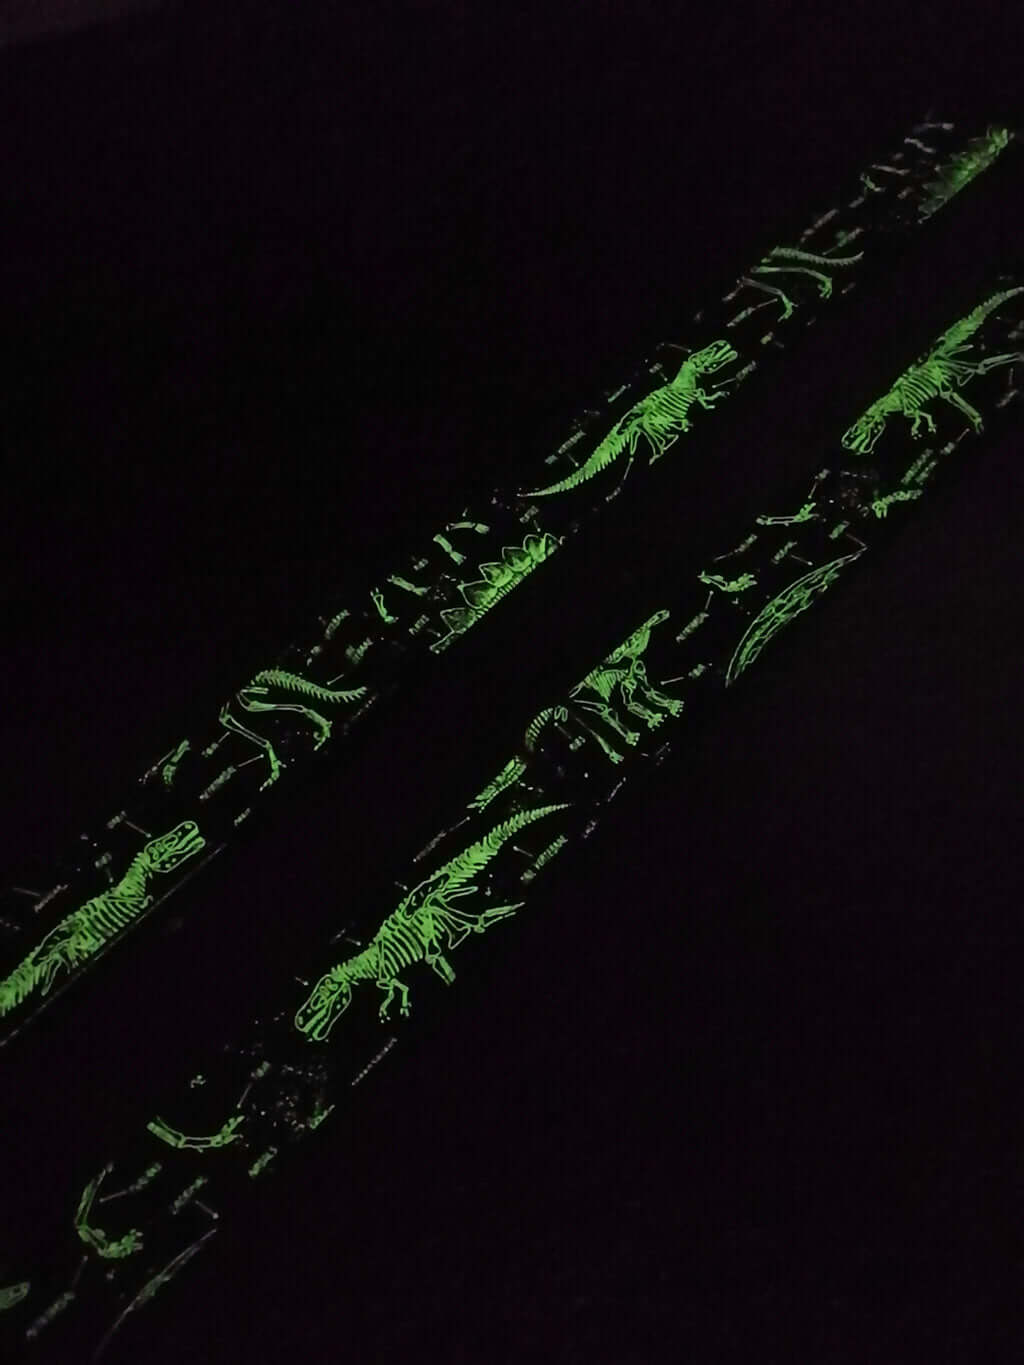 dinosaur grow in the dark clip on ukulele strap with hook